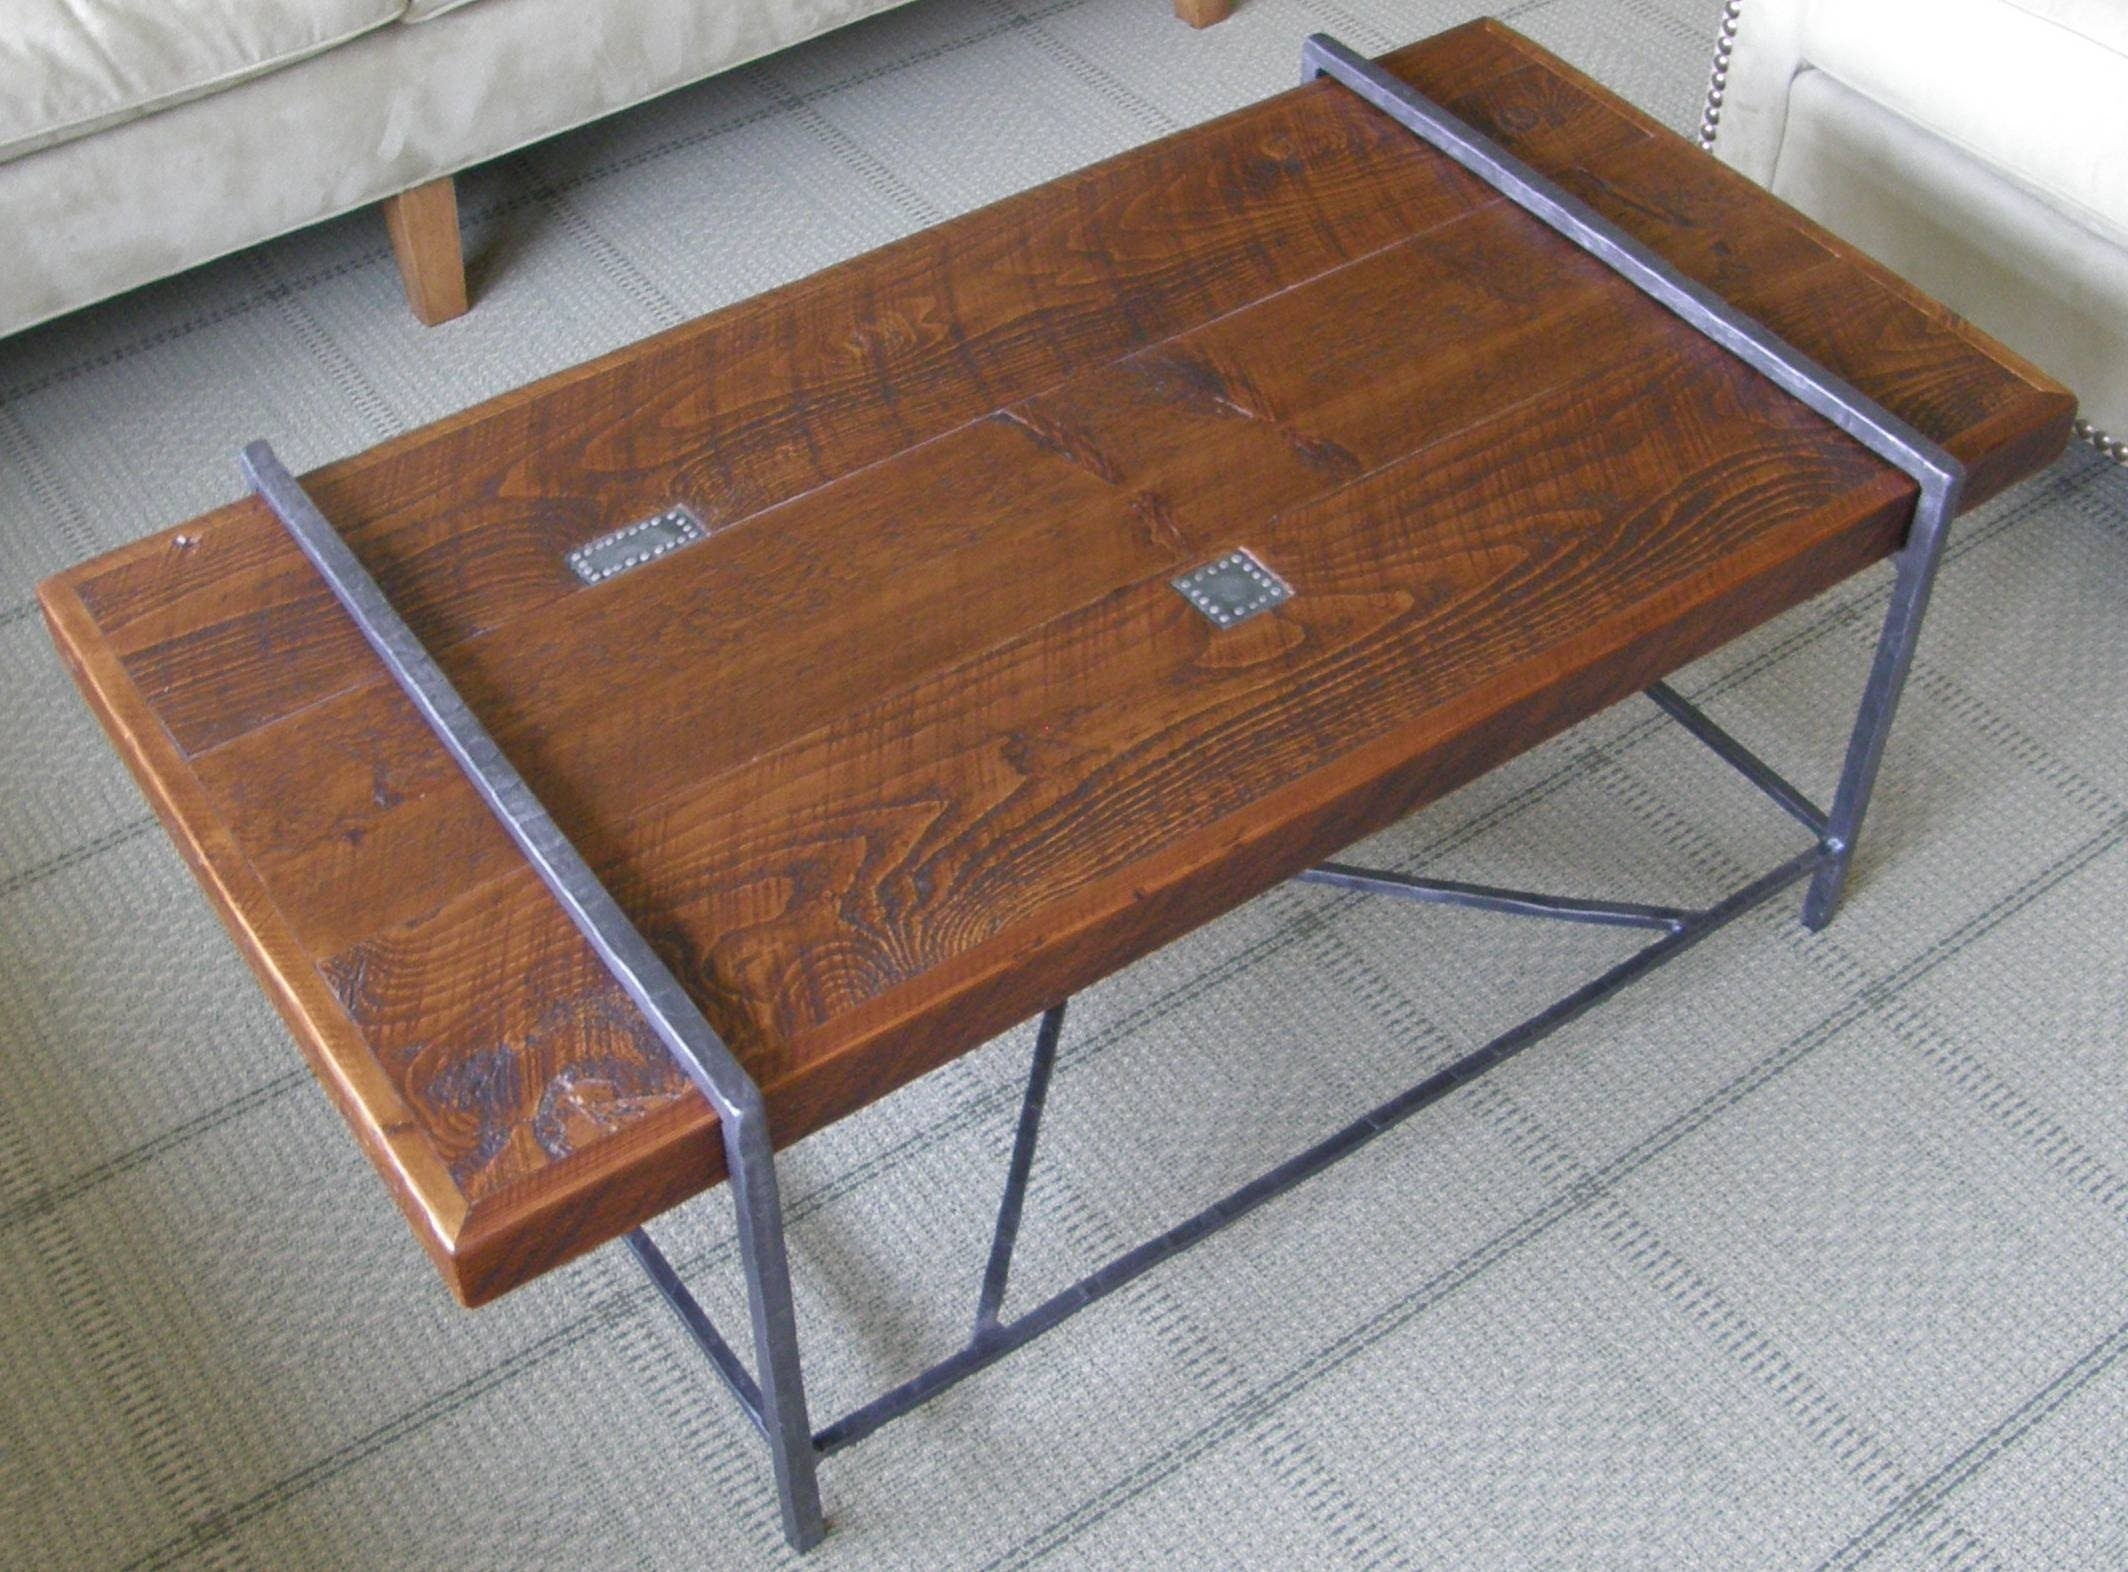 Reclaimed Wood Coffee Table Top With Metal Base - Youtube inside Mill Large Coffee Tables (Image 23 of 30)